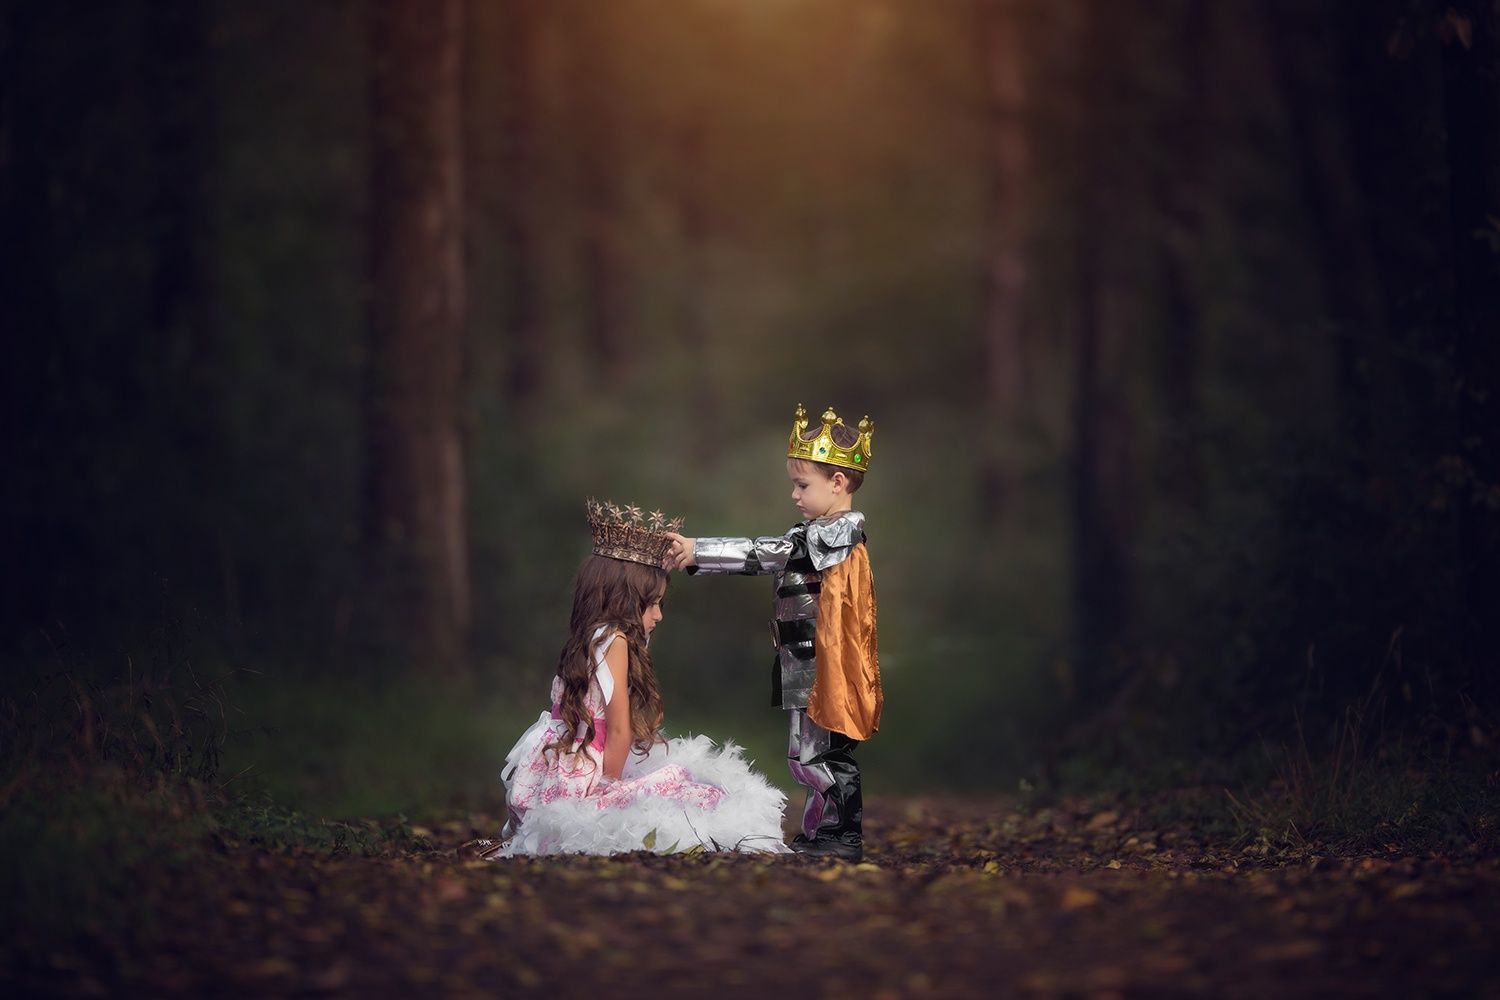 Download King And Queen Wallpaper Gallery